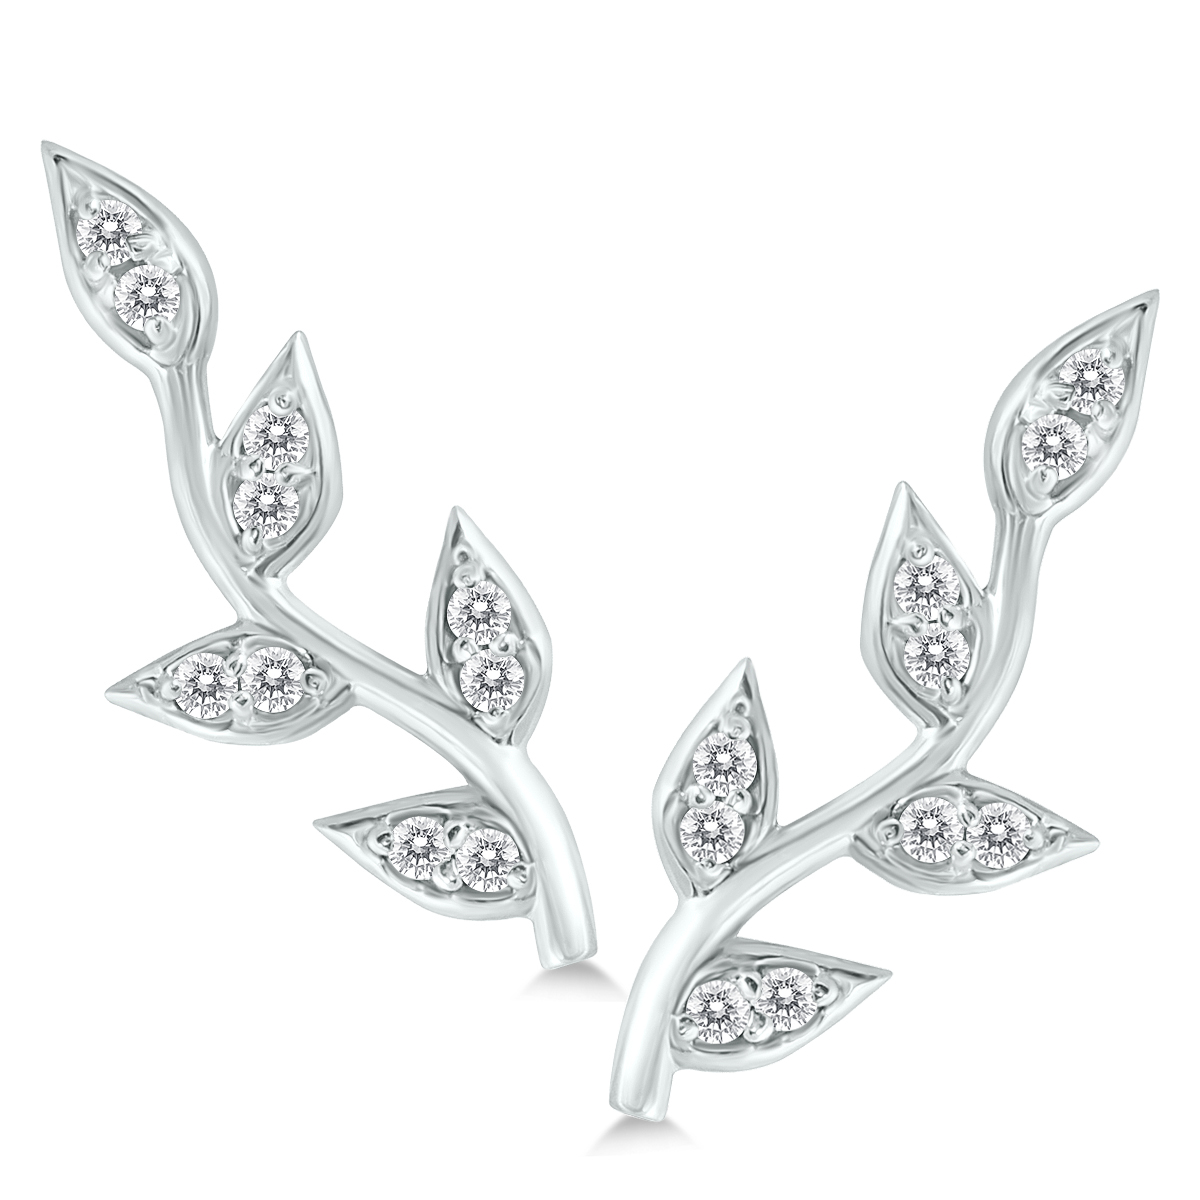 1/5 Carat Tw Diamond Vine And Leaf Earrings In 14k White Gold